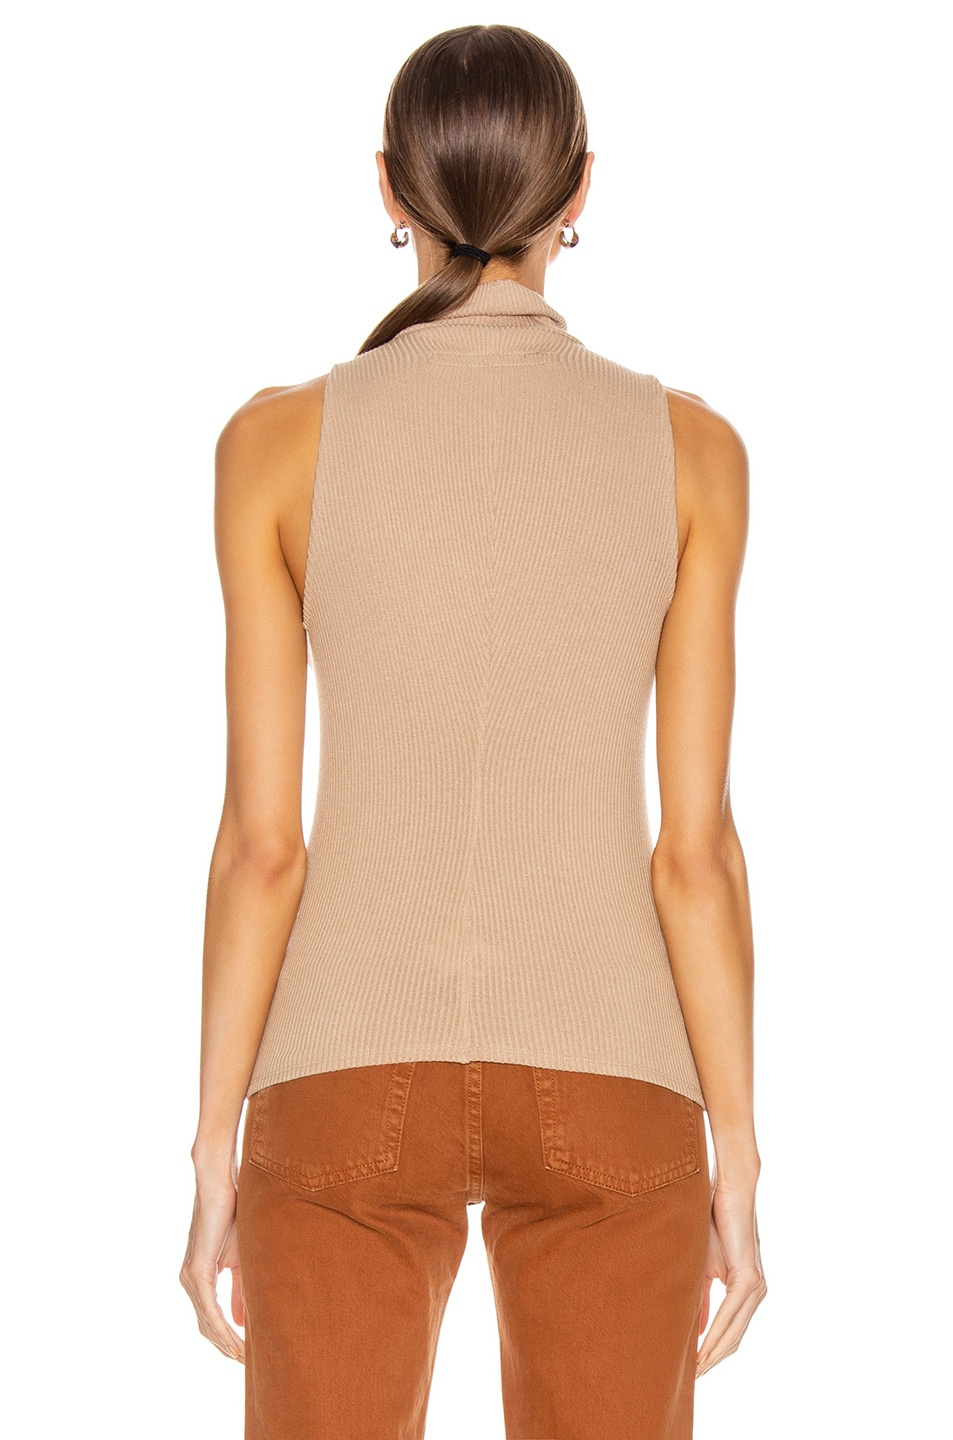 Image 3 of Enza Costa for FWRD Rib Sleeveless Turtleneck in Sandstone